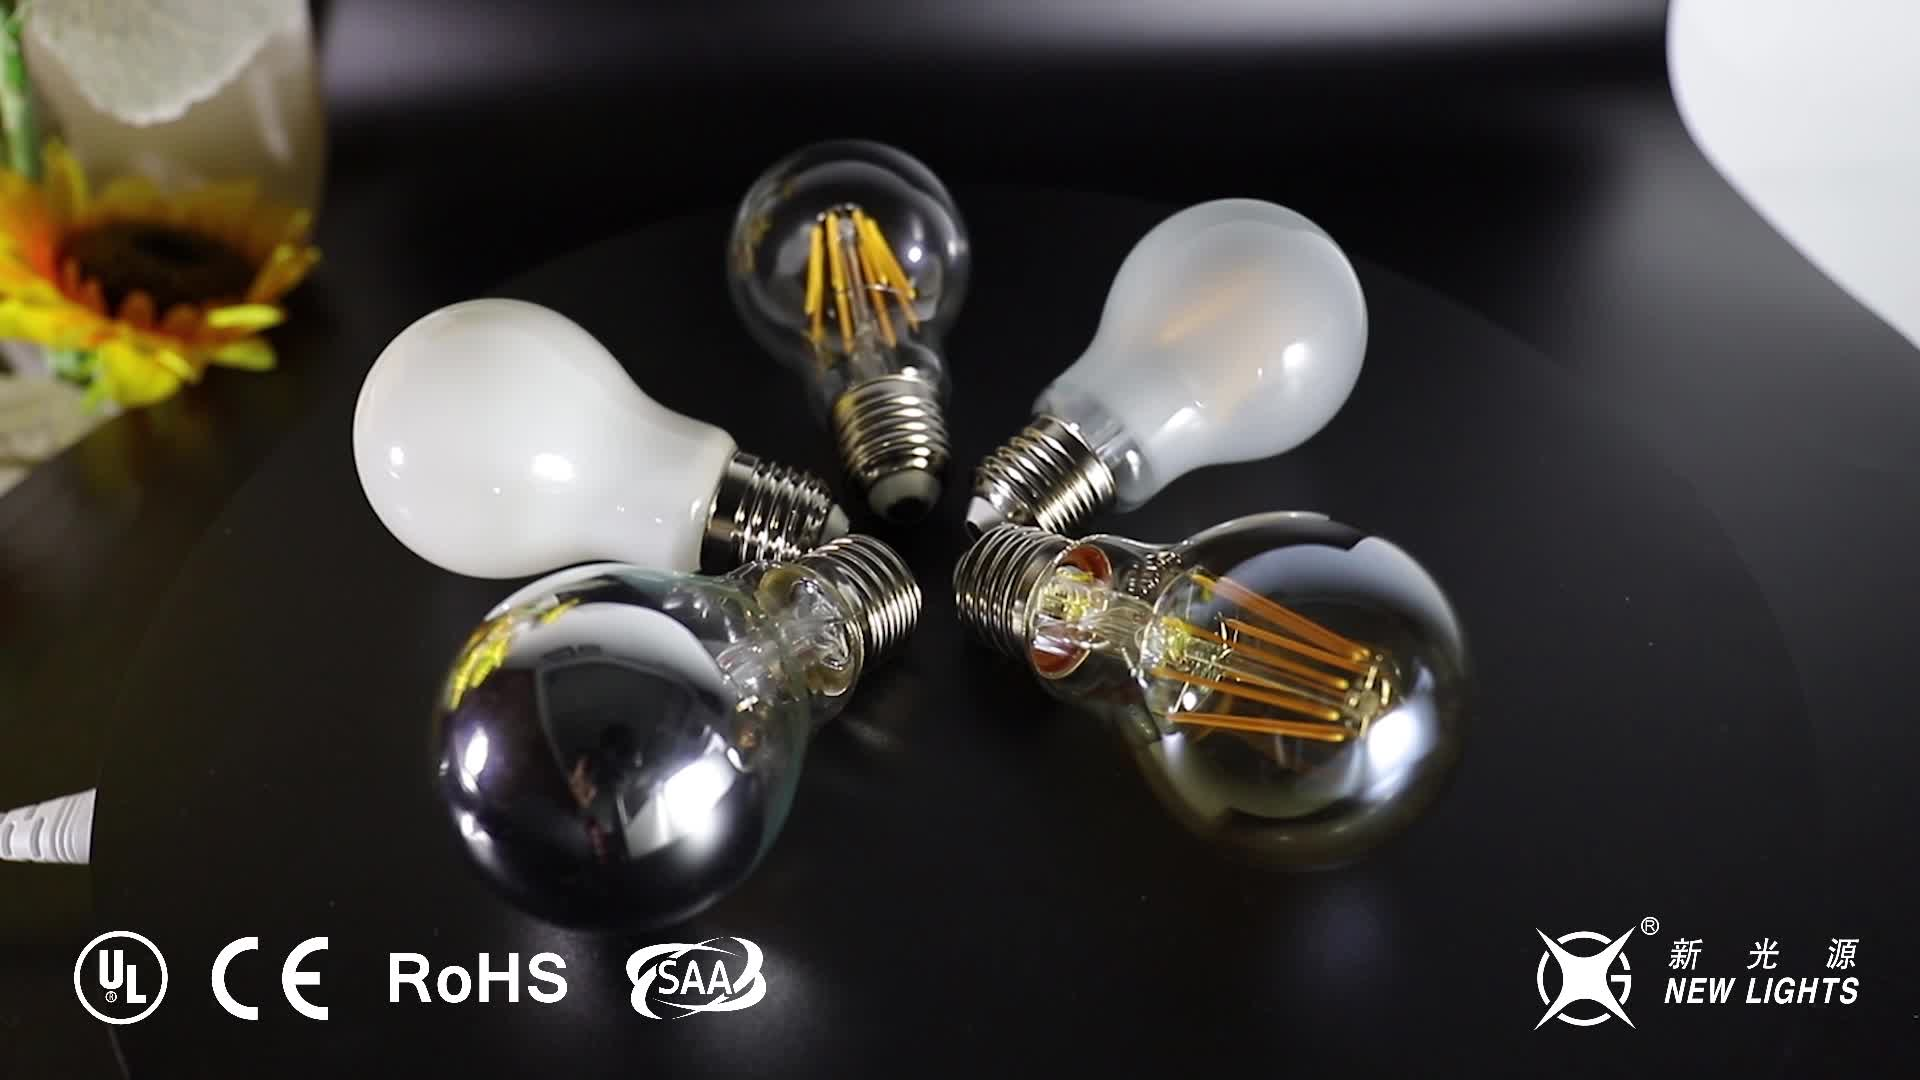 Groothandel Clear 2W 4W 6W 8W Led Gloeilamp E27 E26 Vintage Glas Edison Dimbare A19 a60 Led Lamp Voor Thuis Decoratie